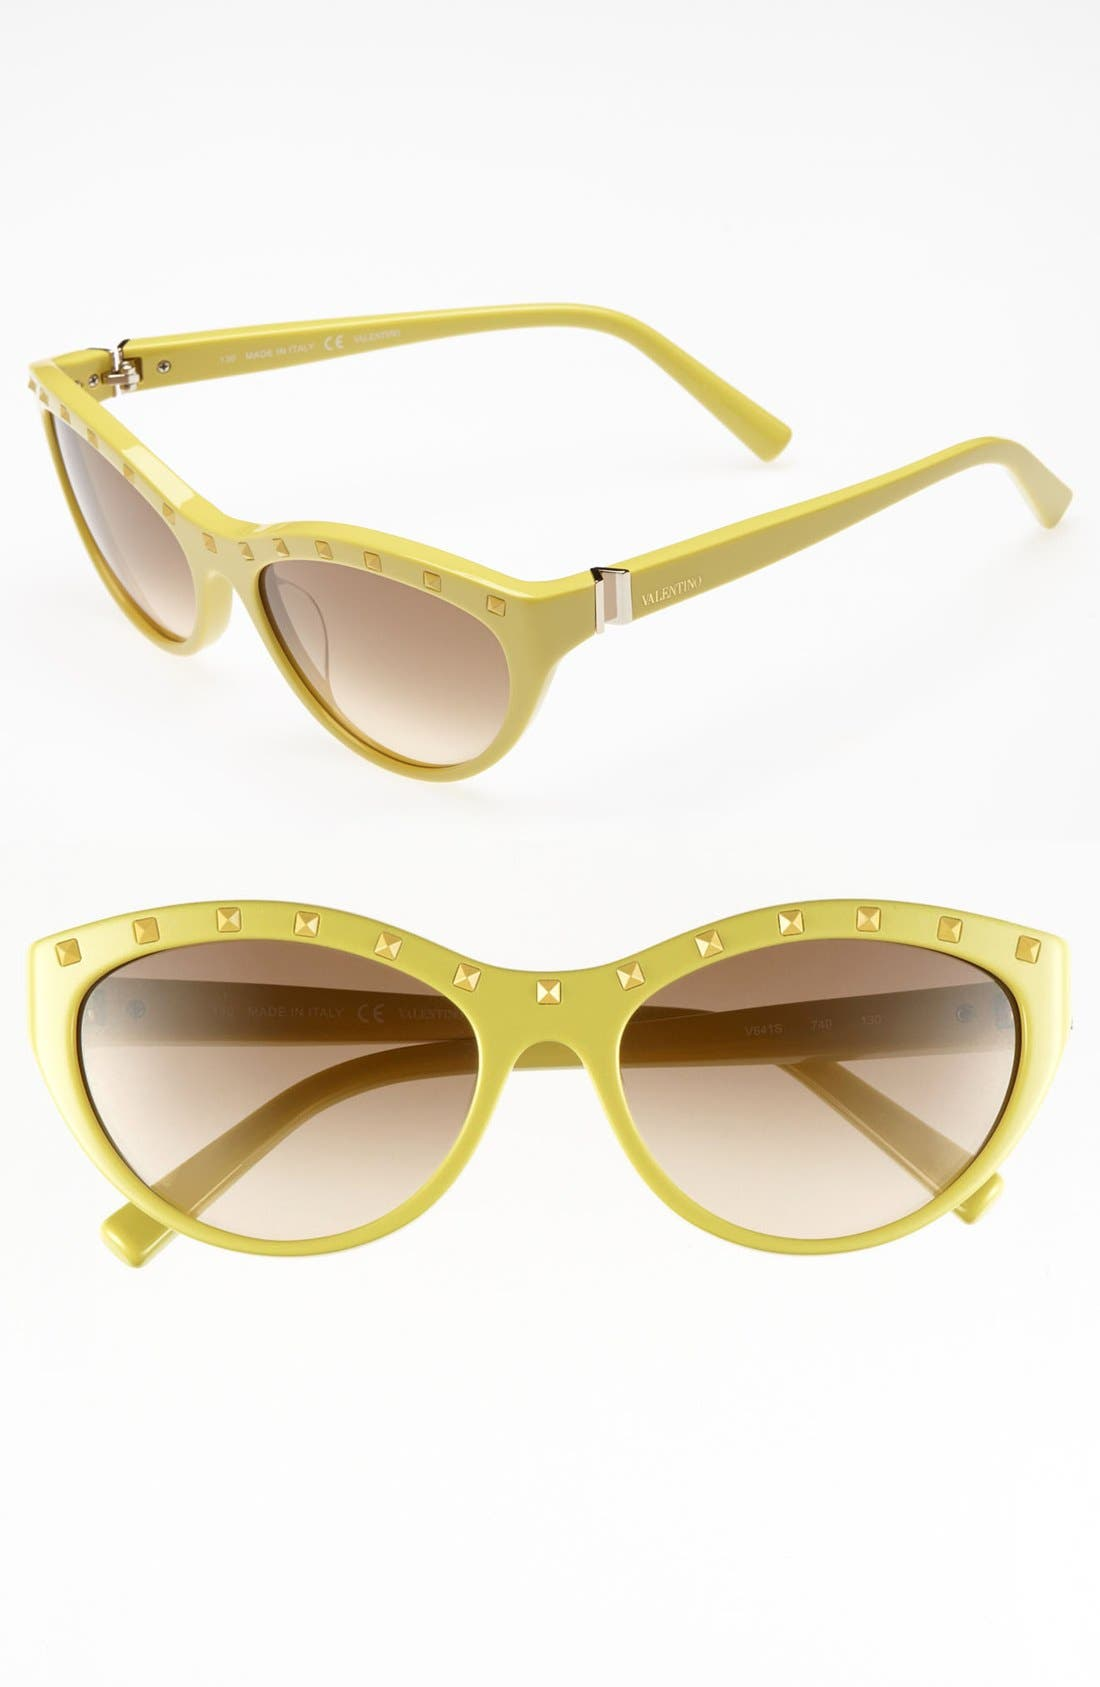 Alternate Image 1 Selected - Valentino 54mm 'Rockstud' Cat's Eye Sunglasses (Online Only)